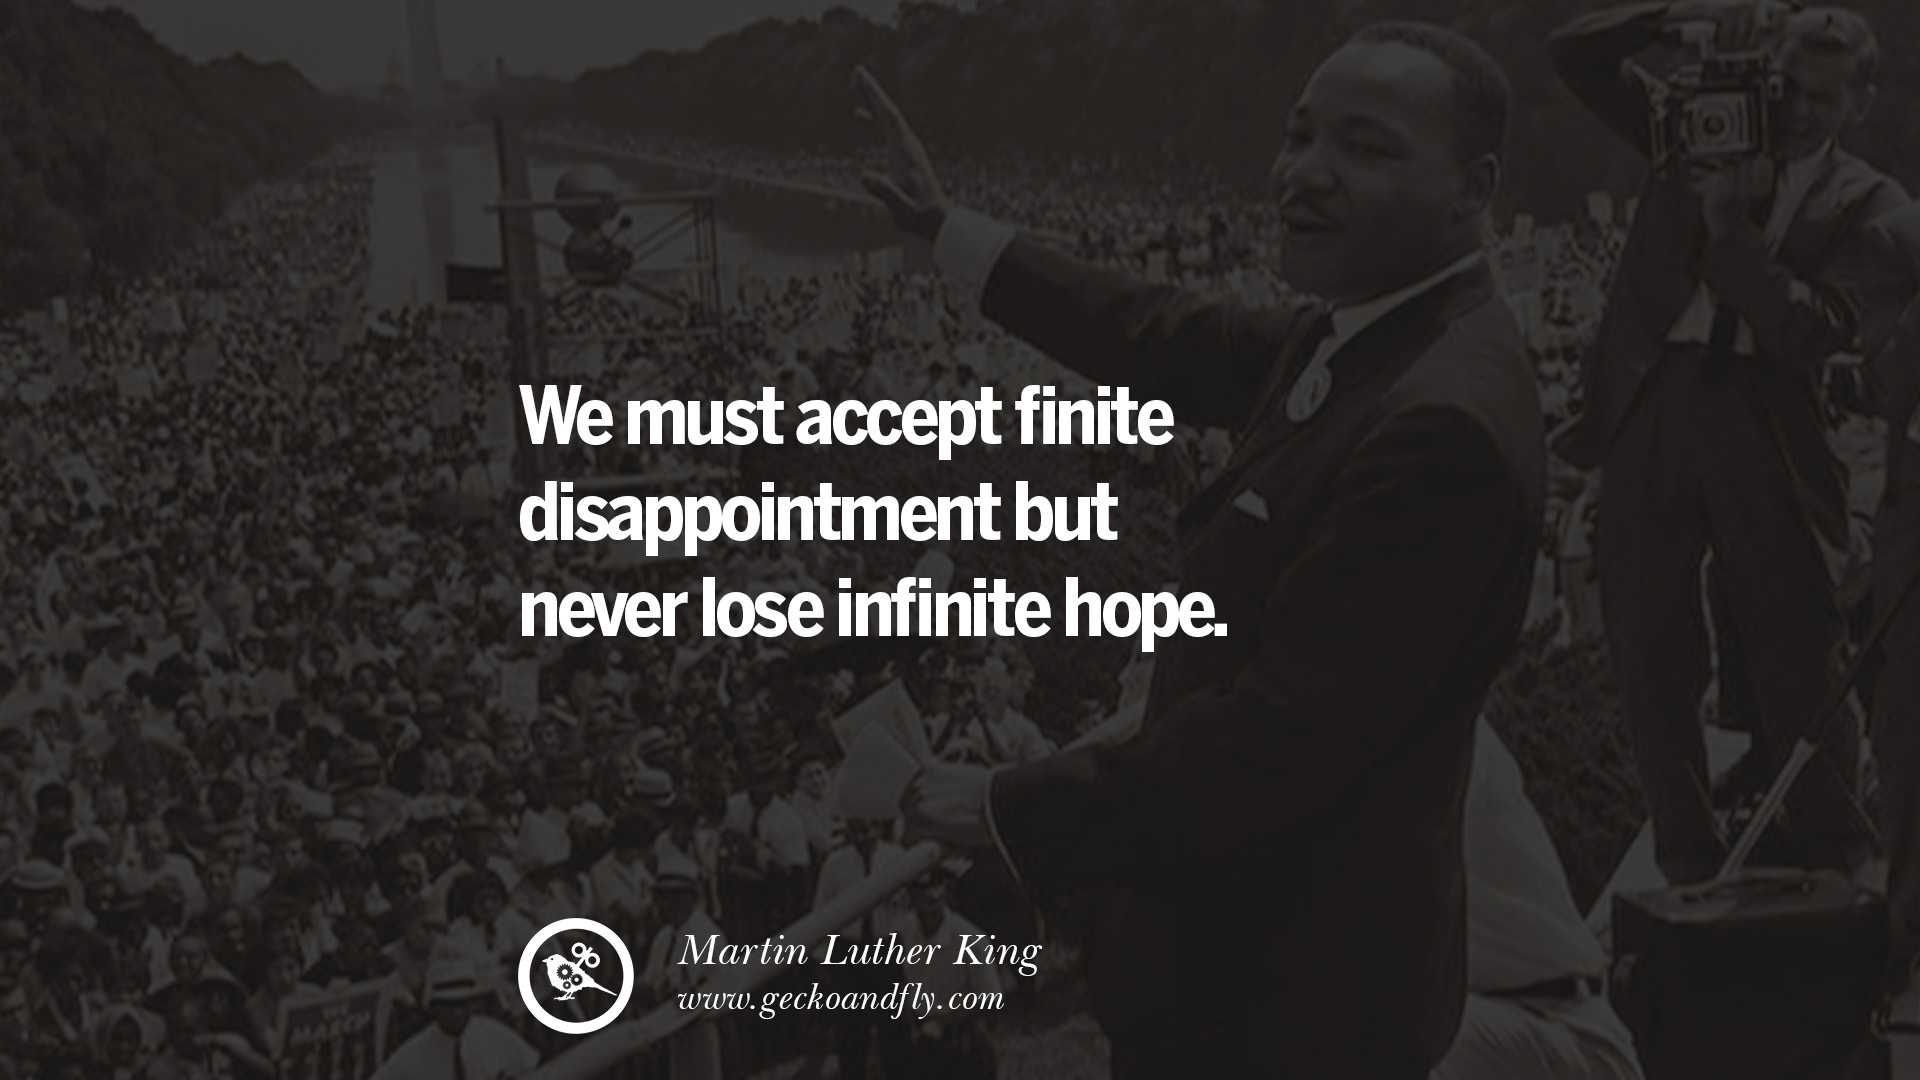 Powerful Quotes 30 Powerful Martin Luther King Jr Quotes On Equality Rights Black